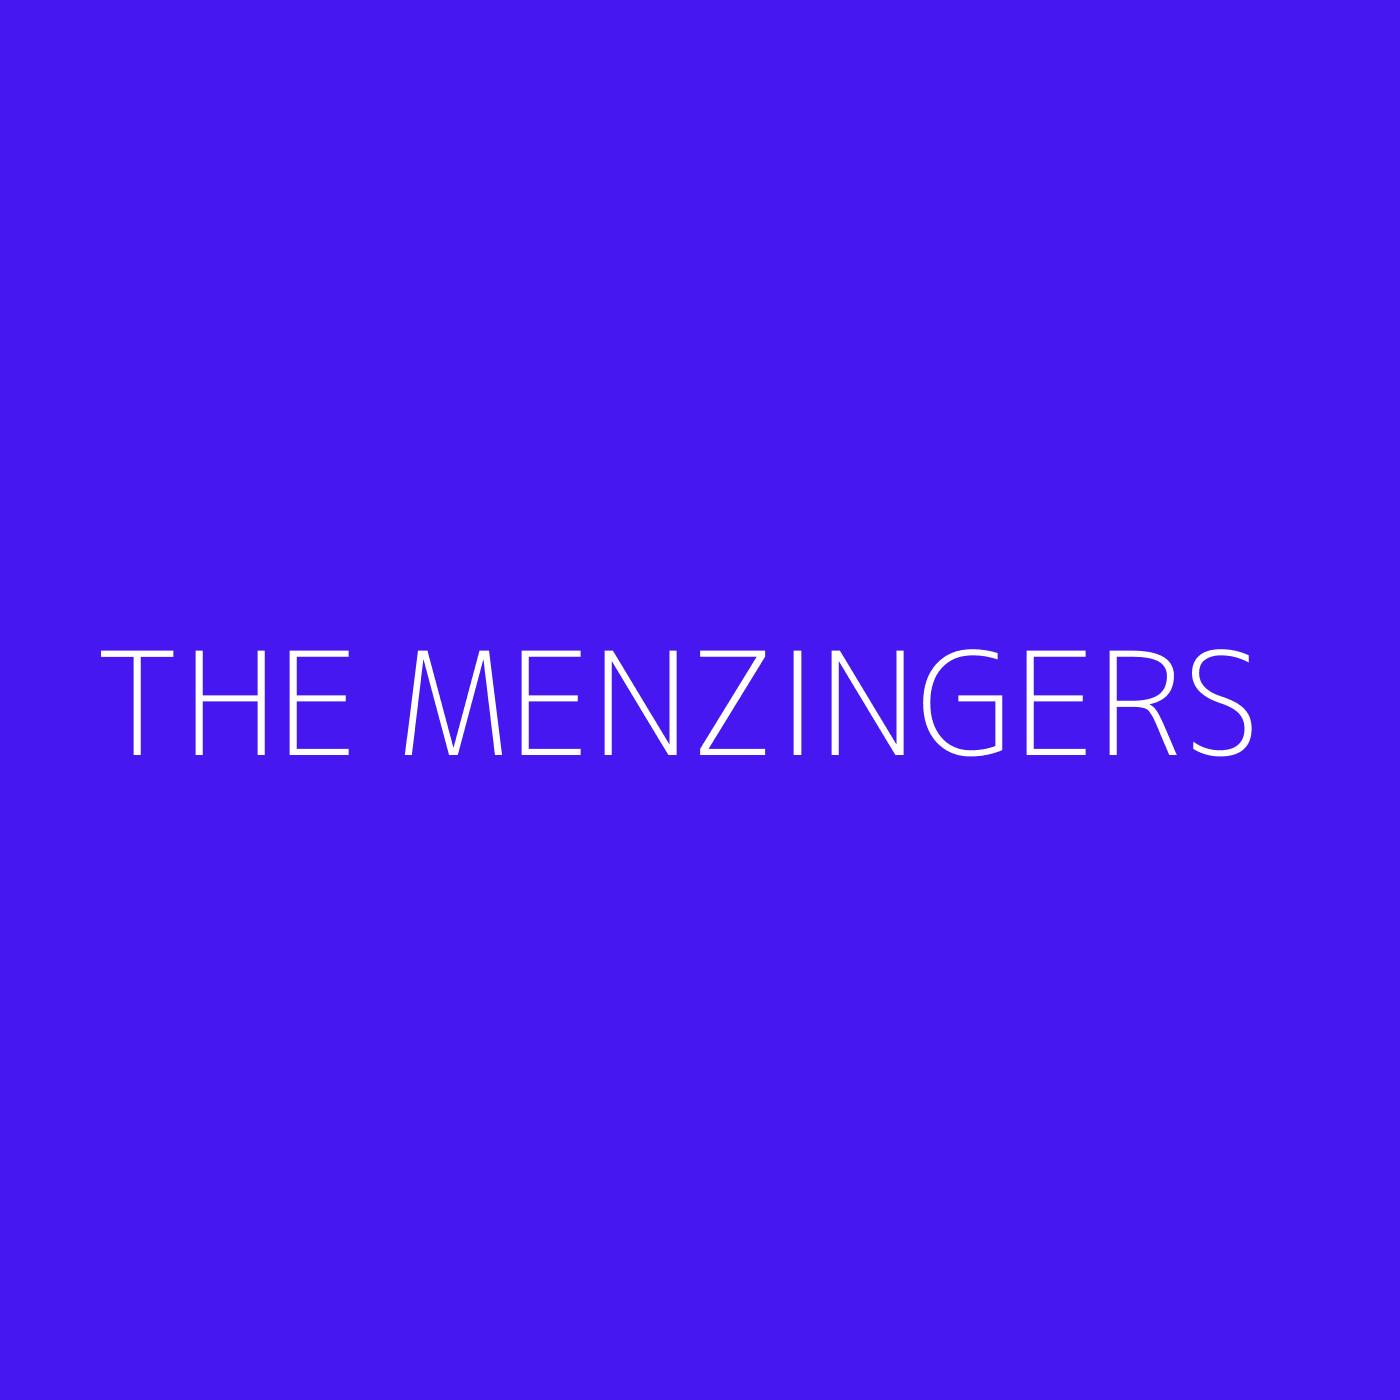 The Menzingers Playlist Artwork